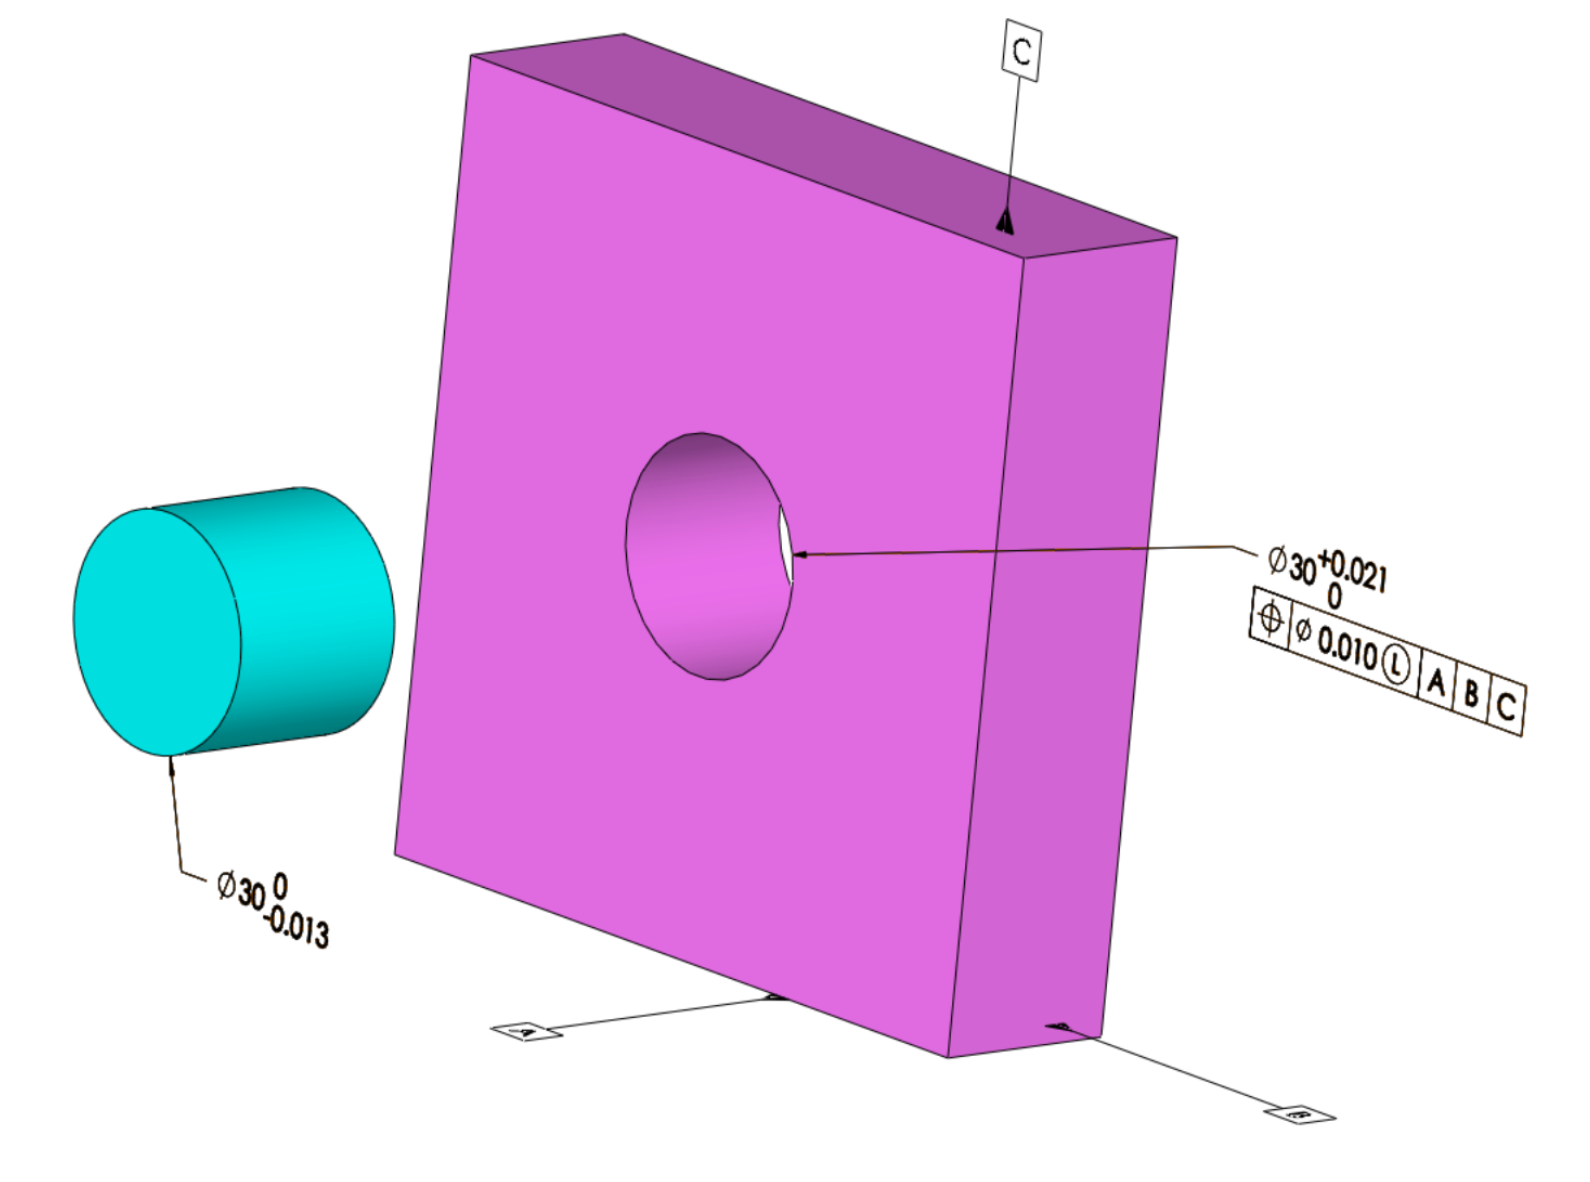 Figure 2. Part with Least Material Modifier: As the designed fit gets tighter (Pin tolerance decreased with respect to the one in Figure 1), the least material modifier becomes more appropriate.